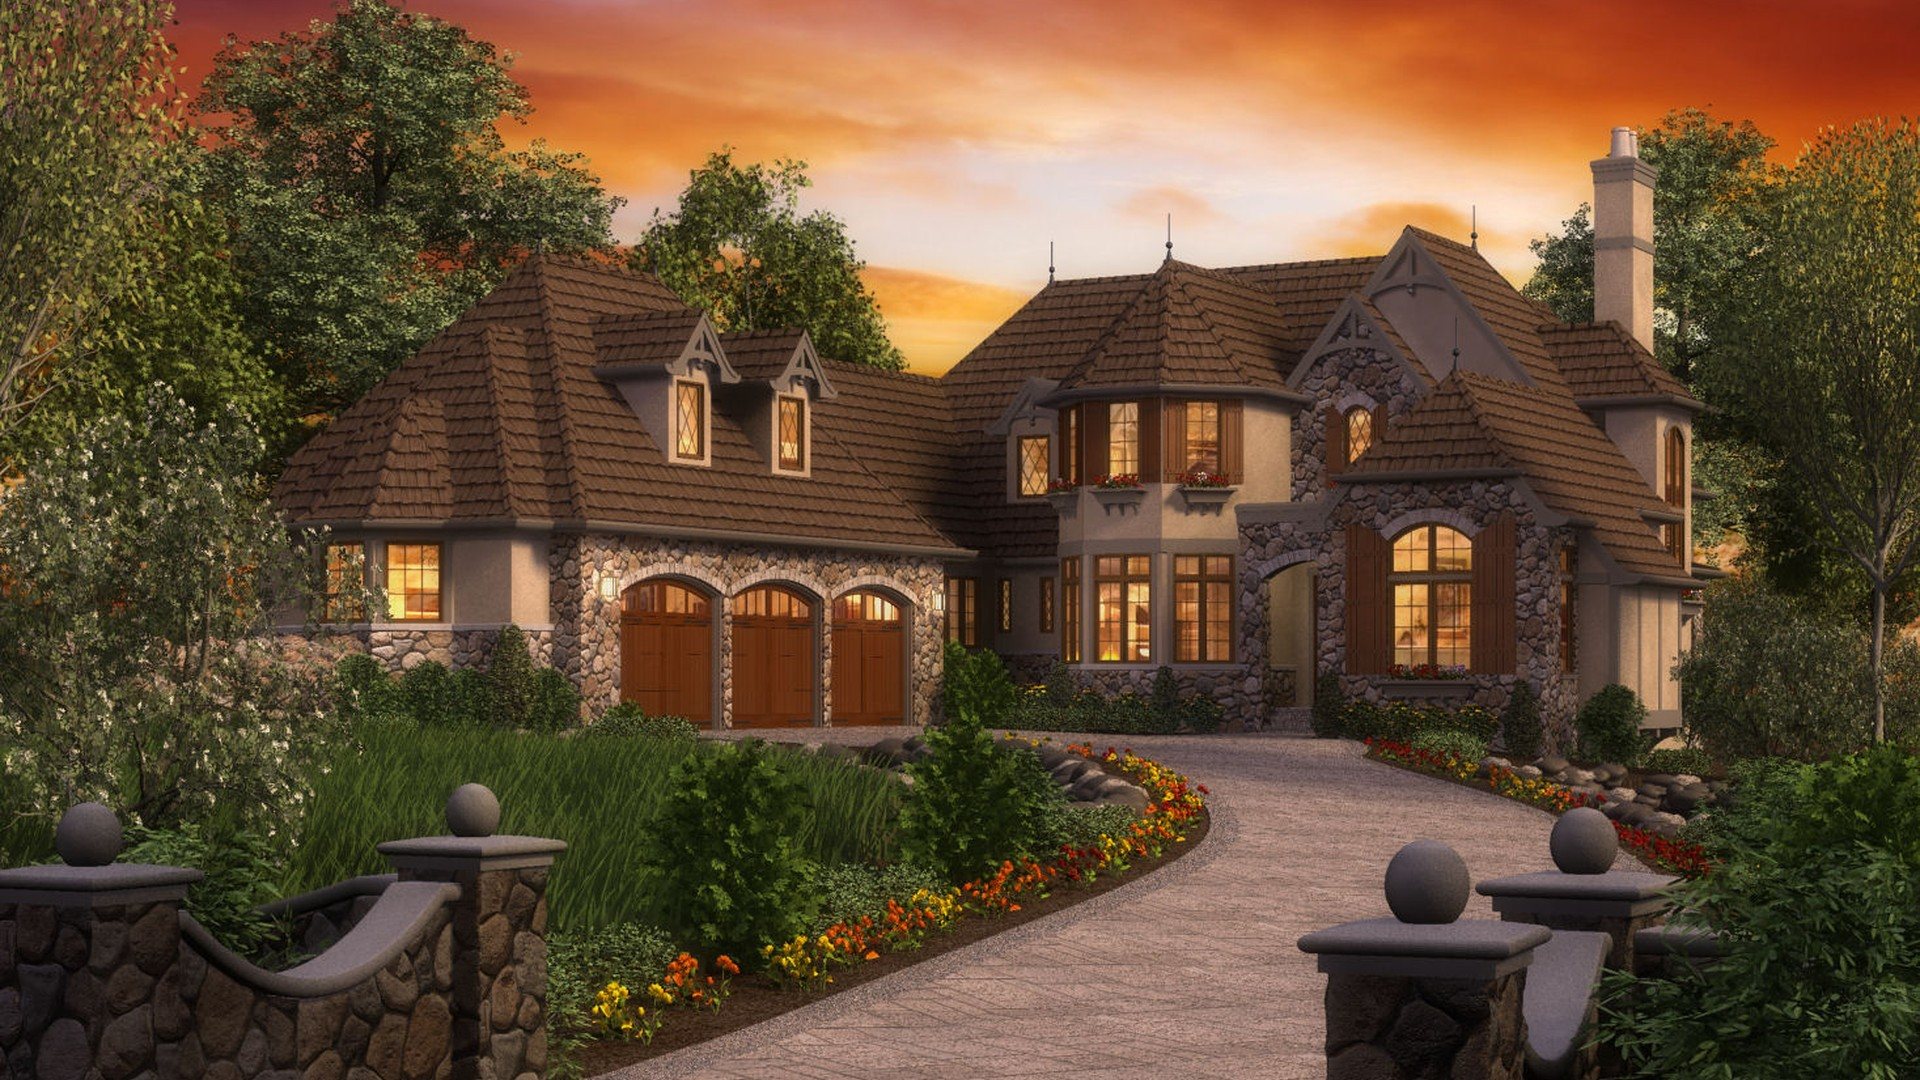 Cottage House Plan 2470 The Rivendell Manor 4142 Sqft 3